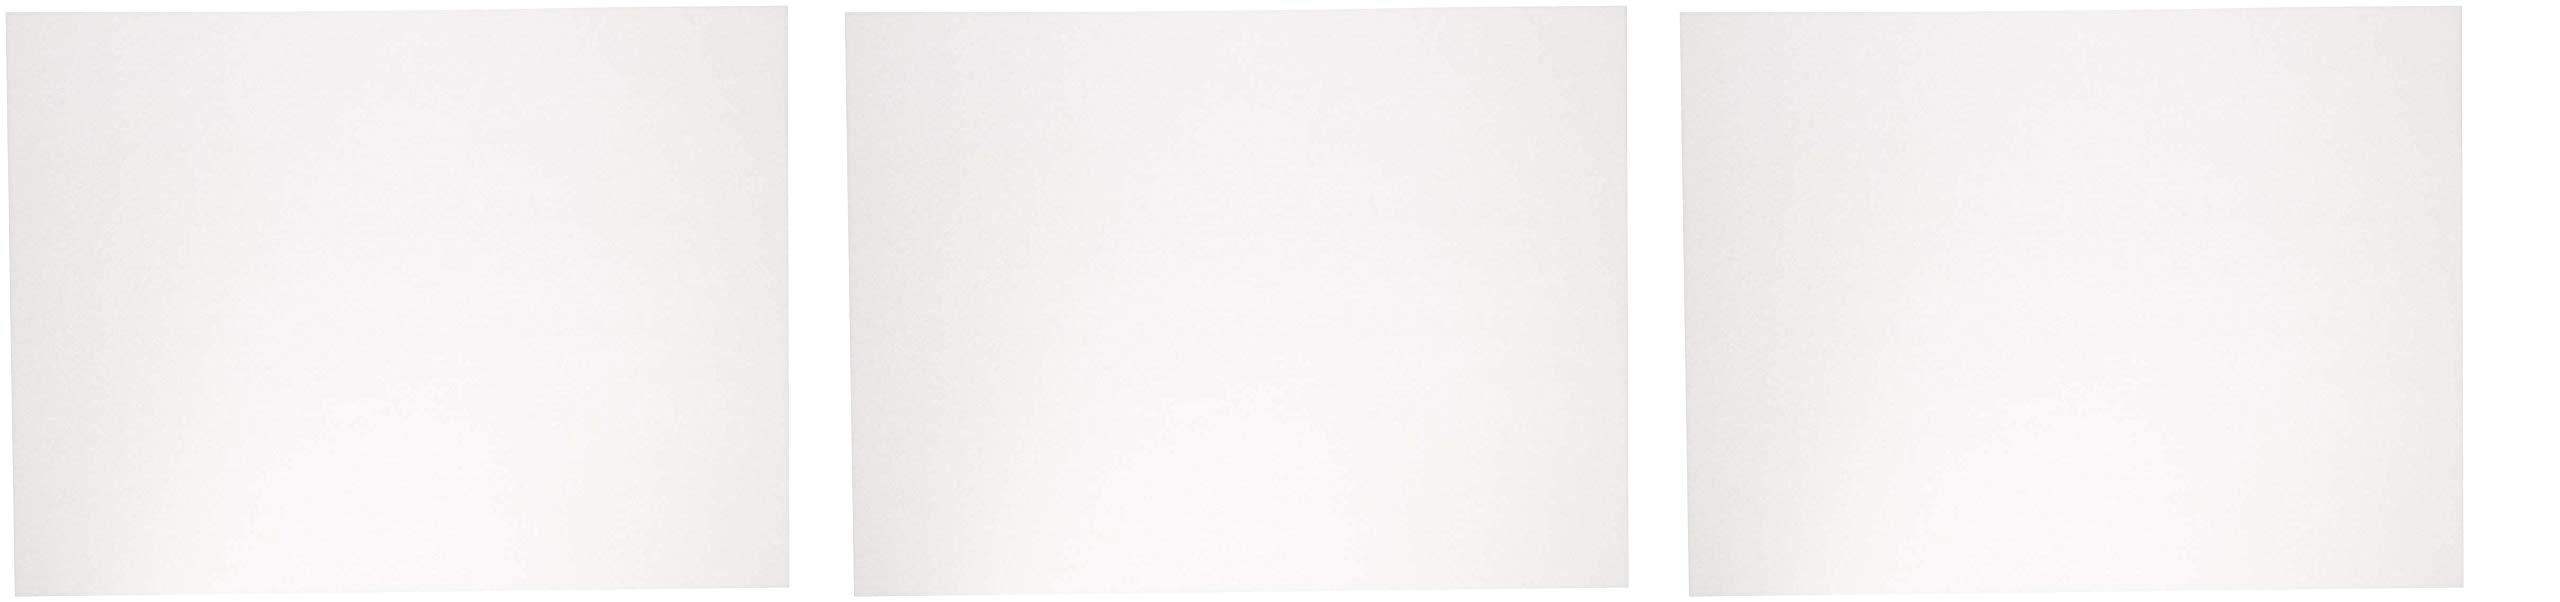 Sax Sulphite Drawing Paper, 60 lb, 18 x 24 Inches, Extra-White, Pack of 500 (3 X Pack of 500)